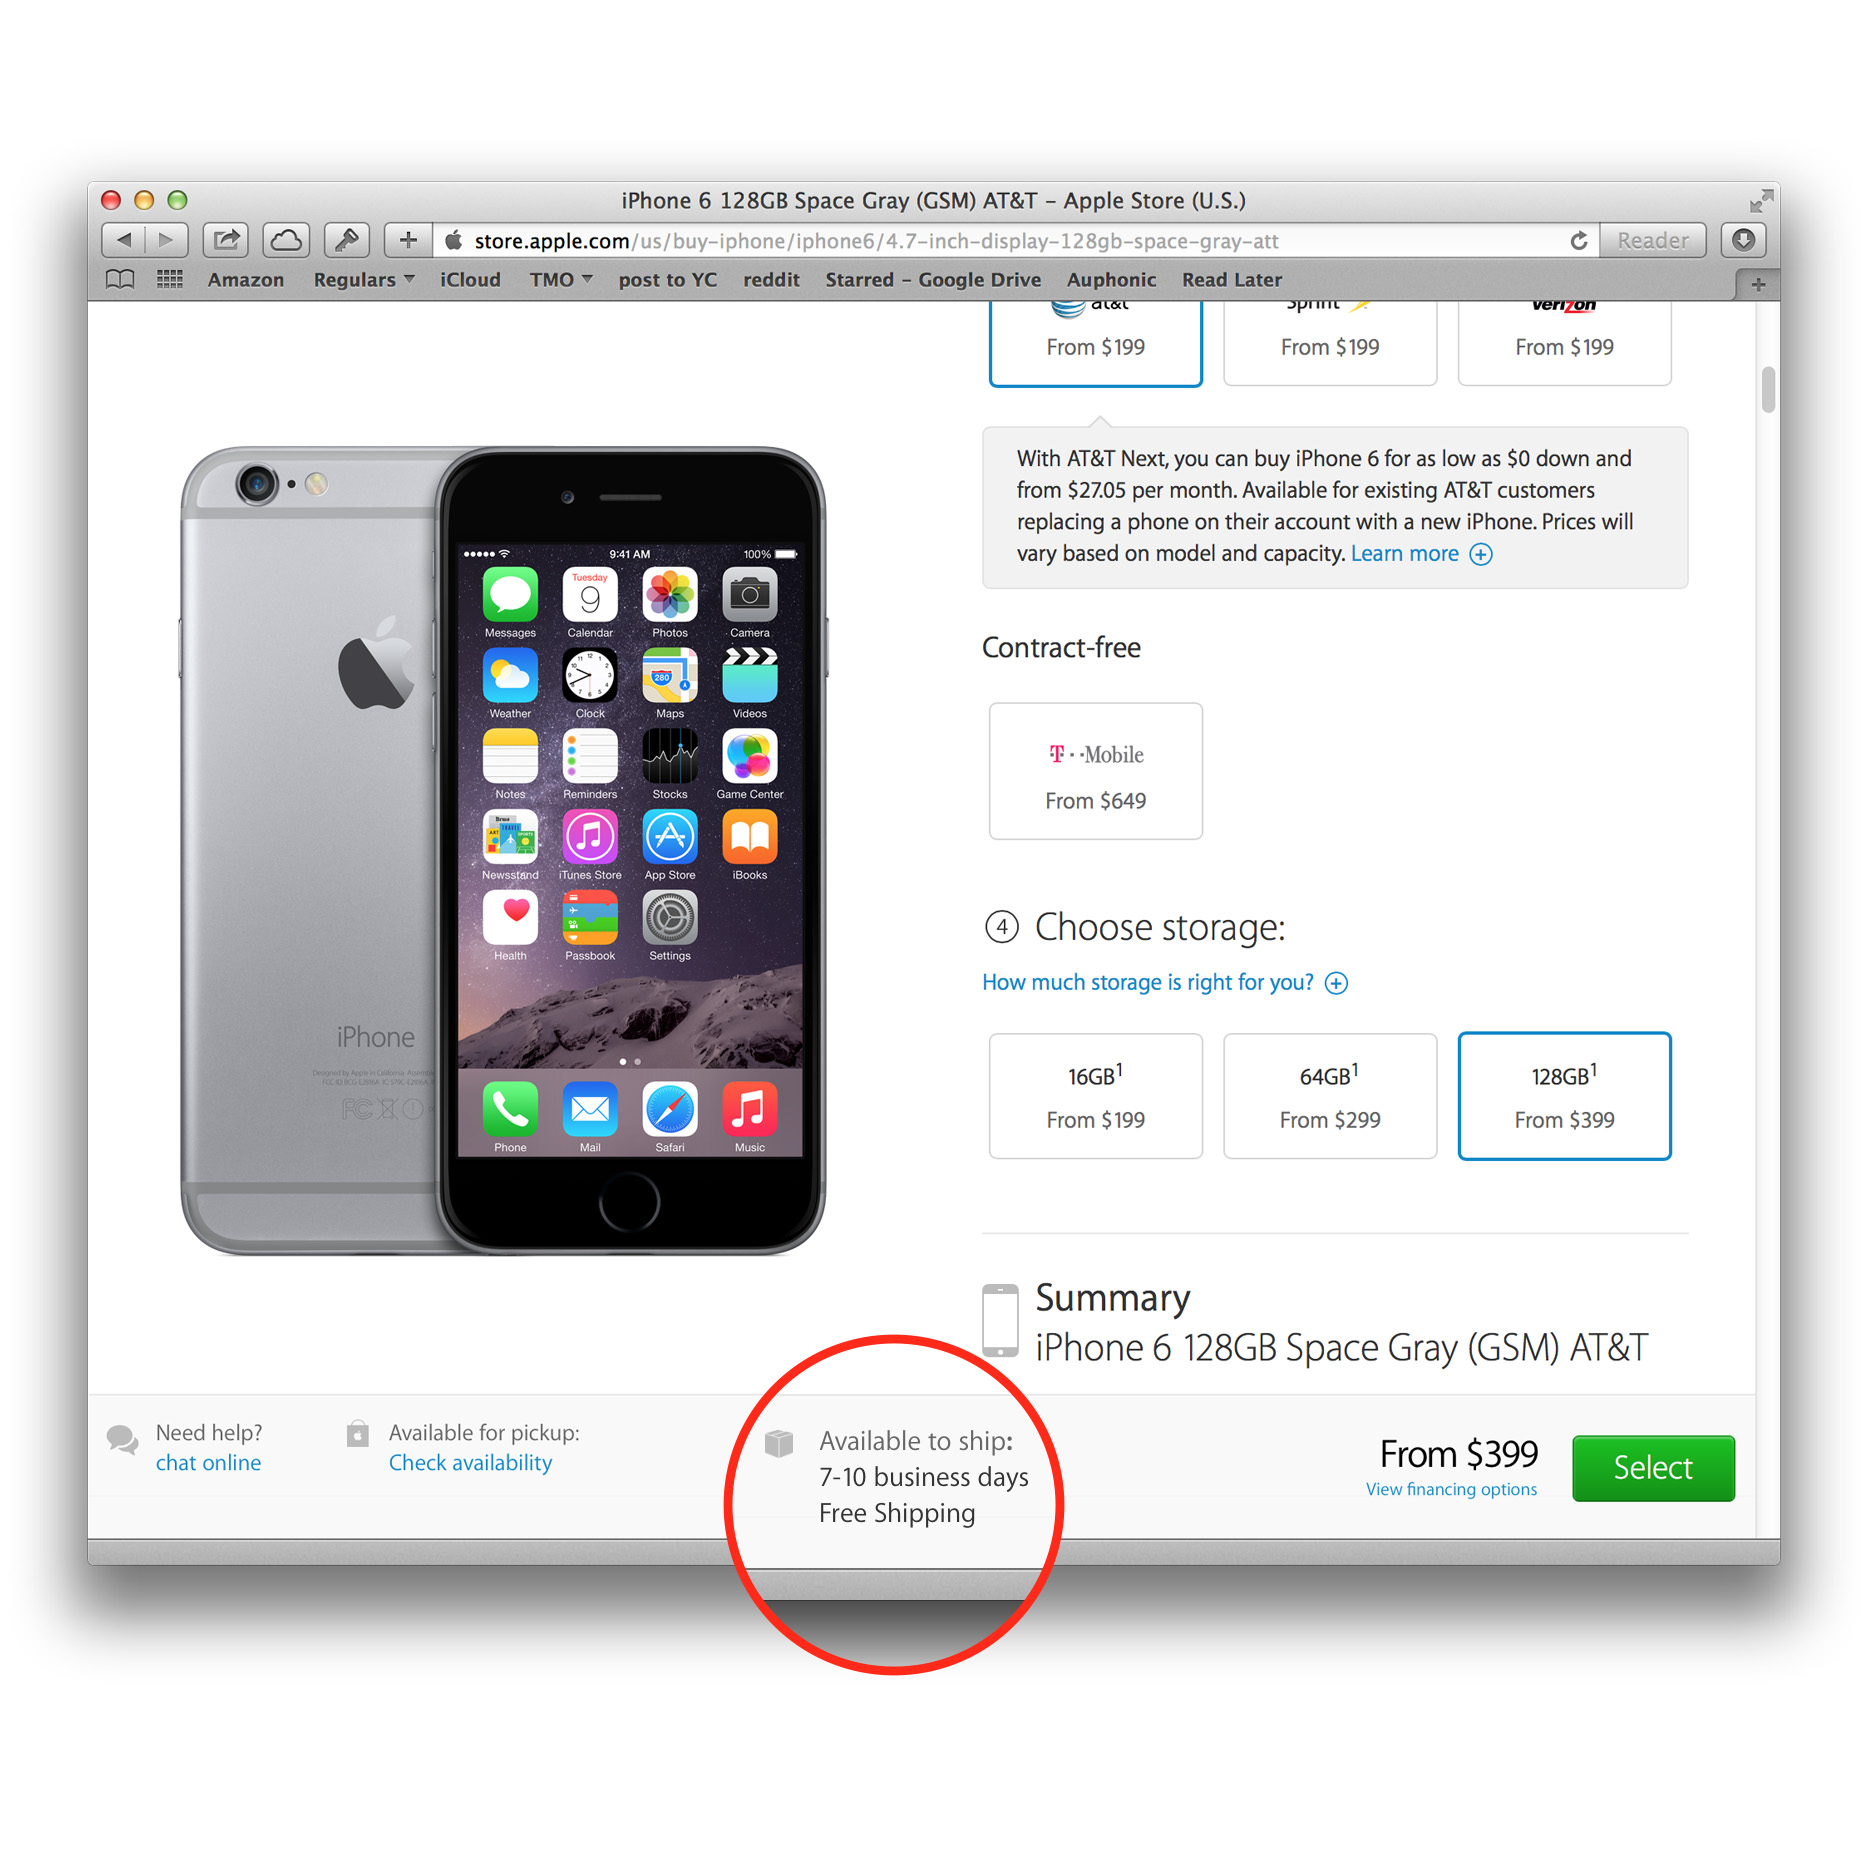 iPhone 6 pre-orders showing week-long shipping delay